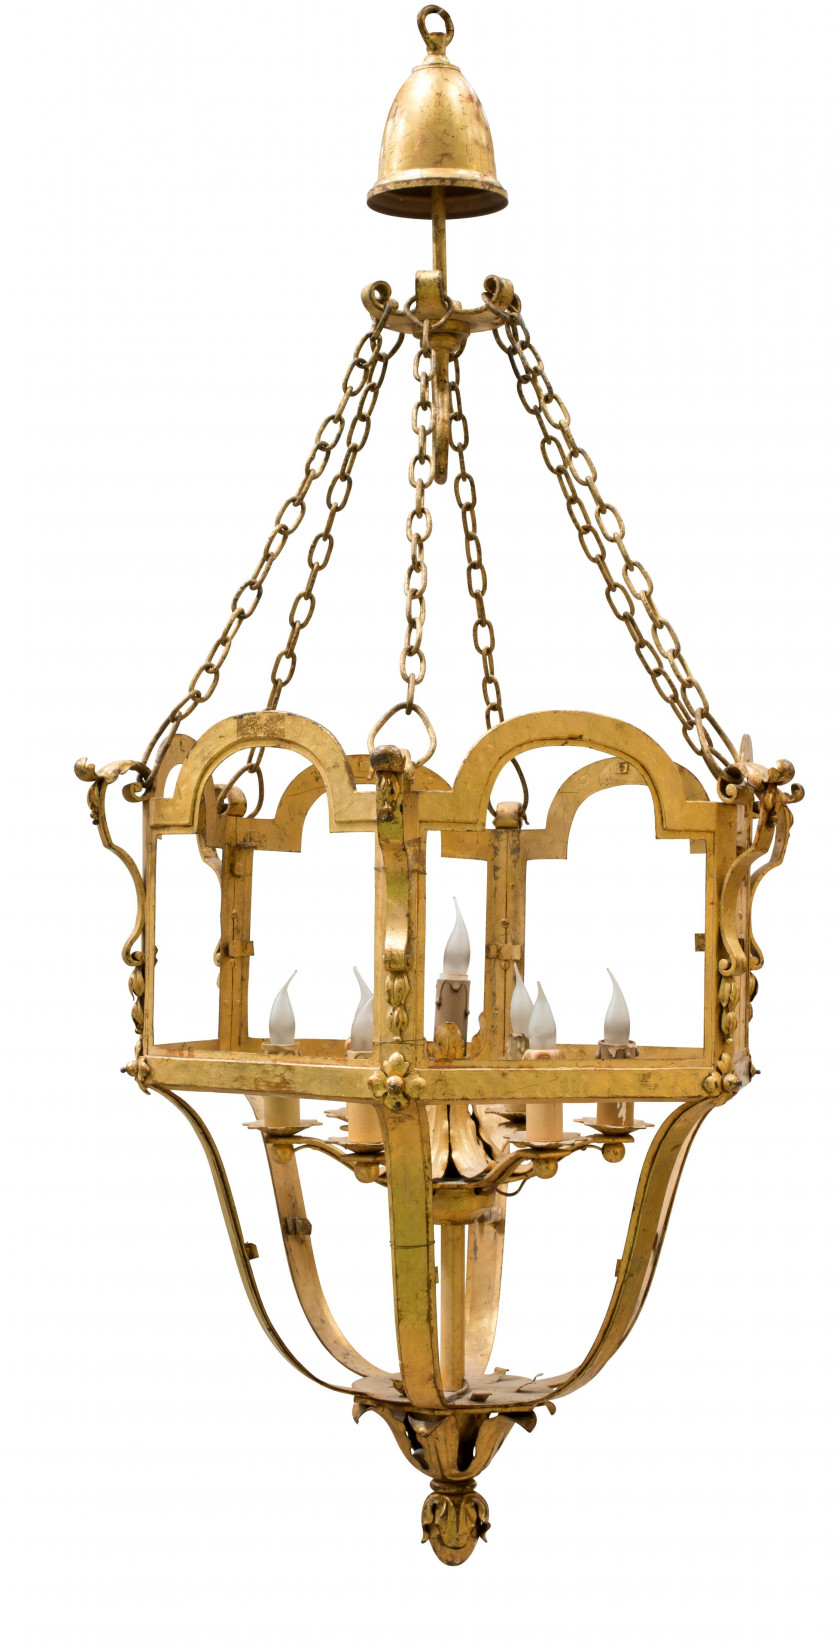 Lustre Cage Ritz Paris 3 Sale N3826 Lot N1415 Artcurial